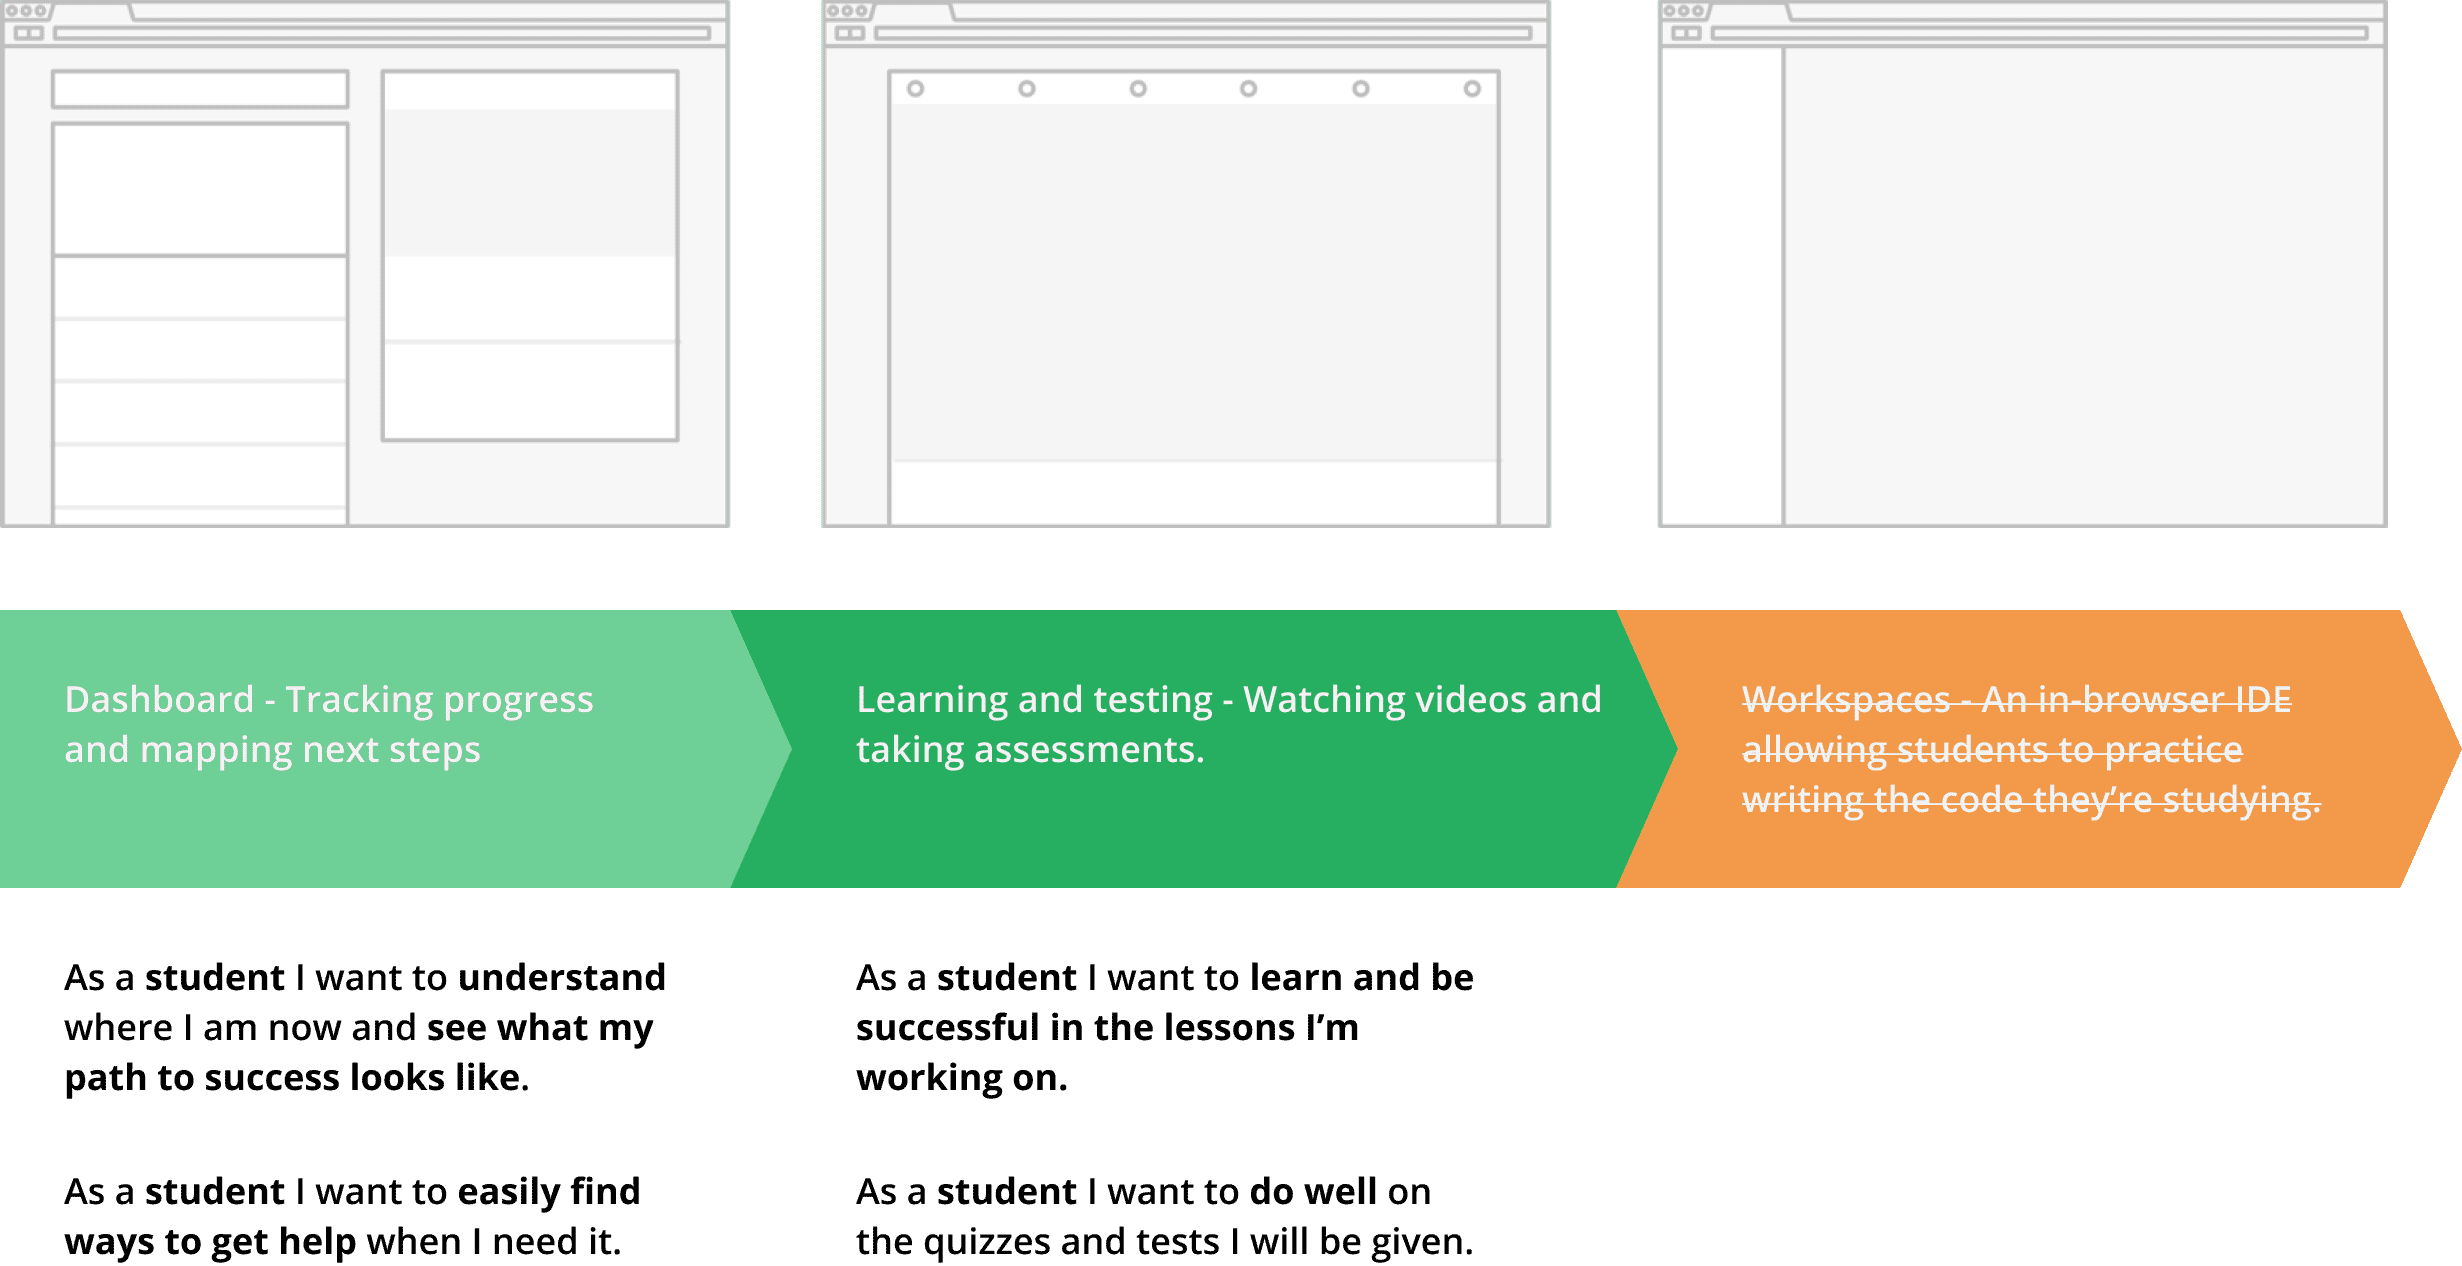 The student lifecycle - the dashboard, the learning space, and workspaces